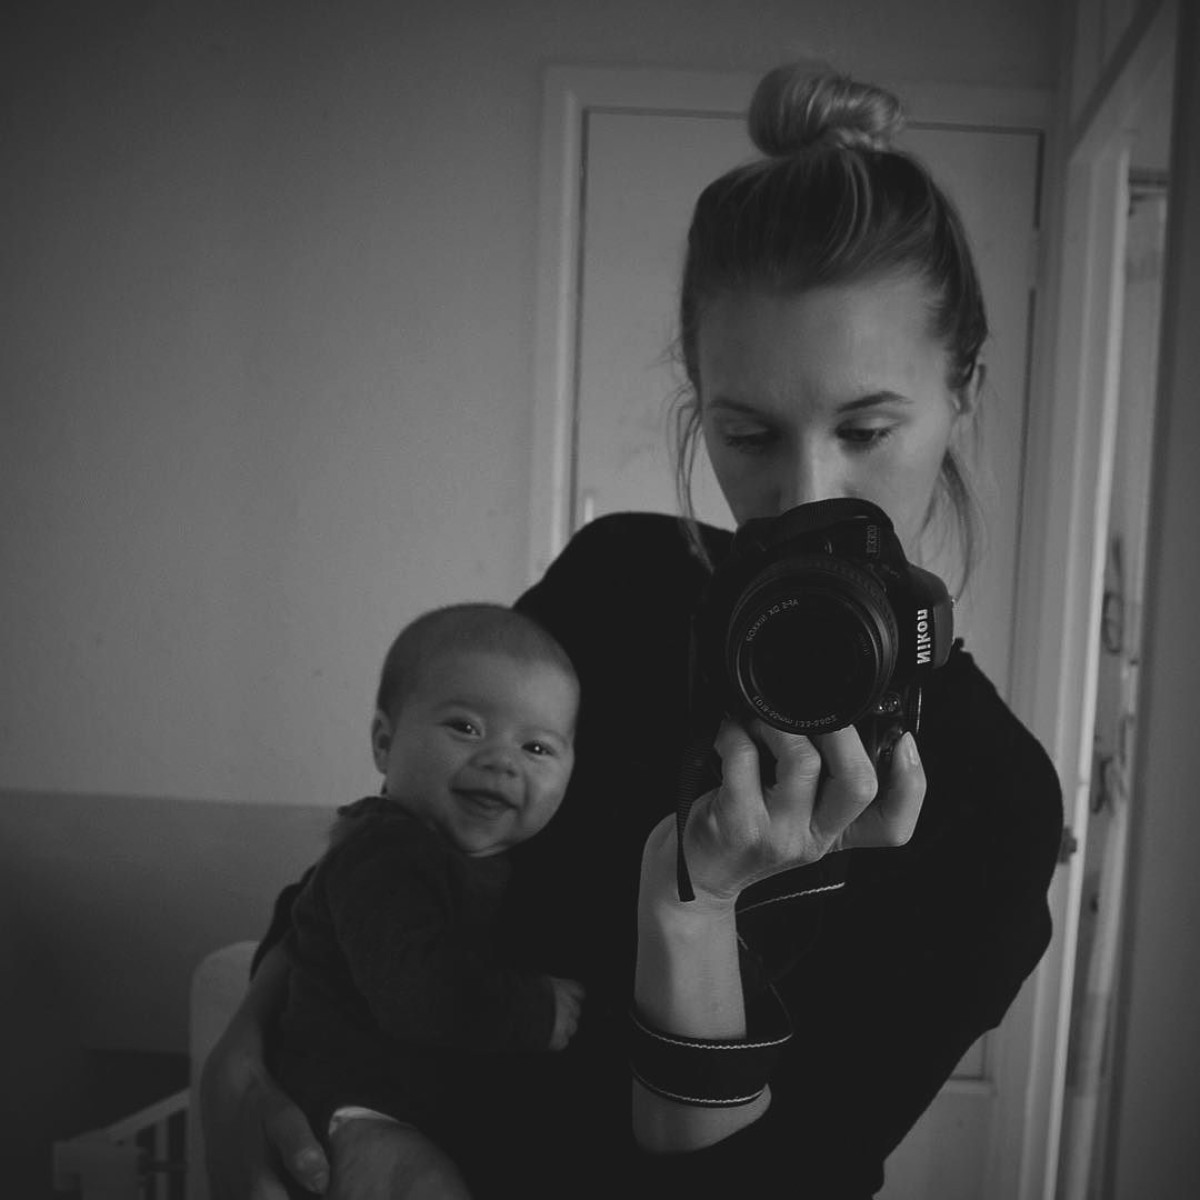 Our month in insta-snaps; October 2016 - Mother holding newborn baby boy whose smiling taking selfie in the mirror with messy bun